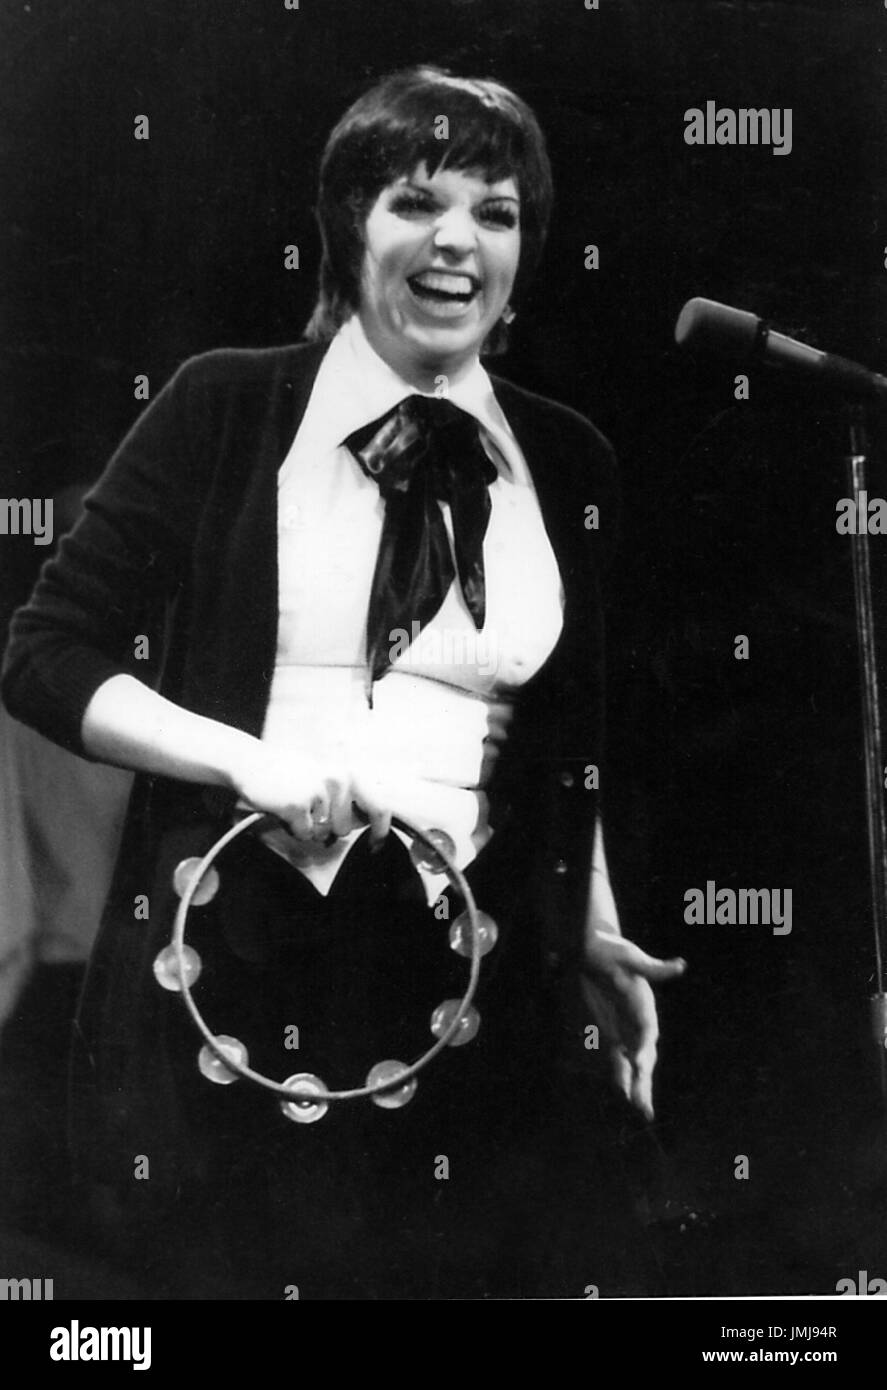 liza minnelli pictured 1974 at the winter garden theater in new